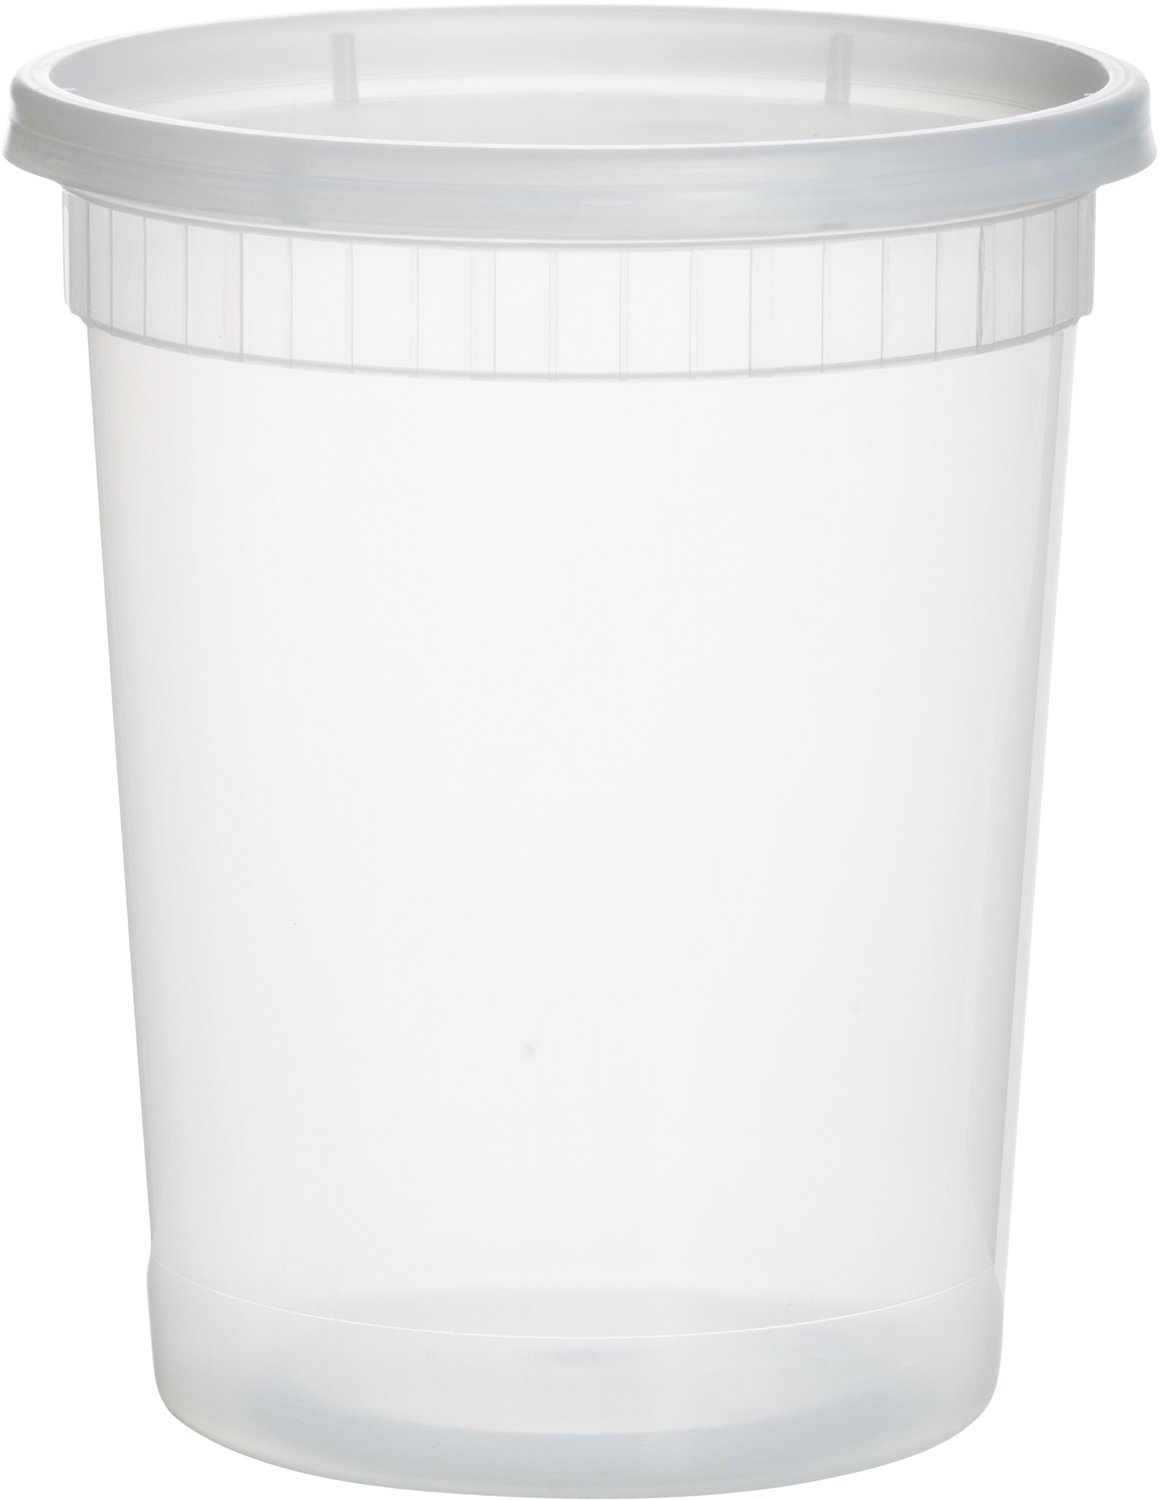 Paksh Novelty Plastic Containers for Lunch/Large Food Container with Lid, Leak Proof, Microwavable, Freezer & Dishwasher Safe, 32 Ounce, 24 Pack